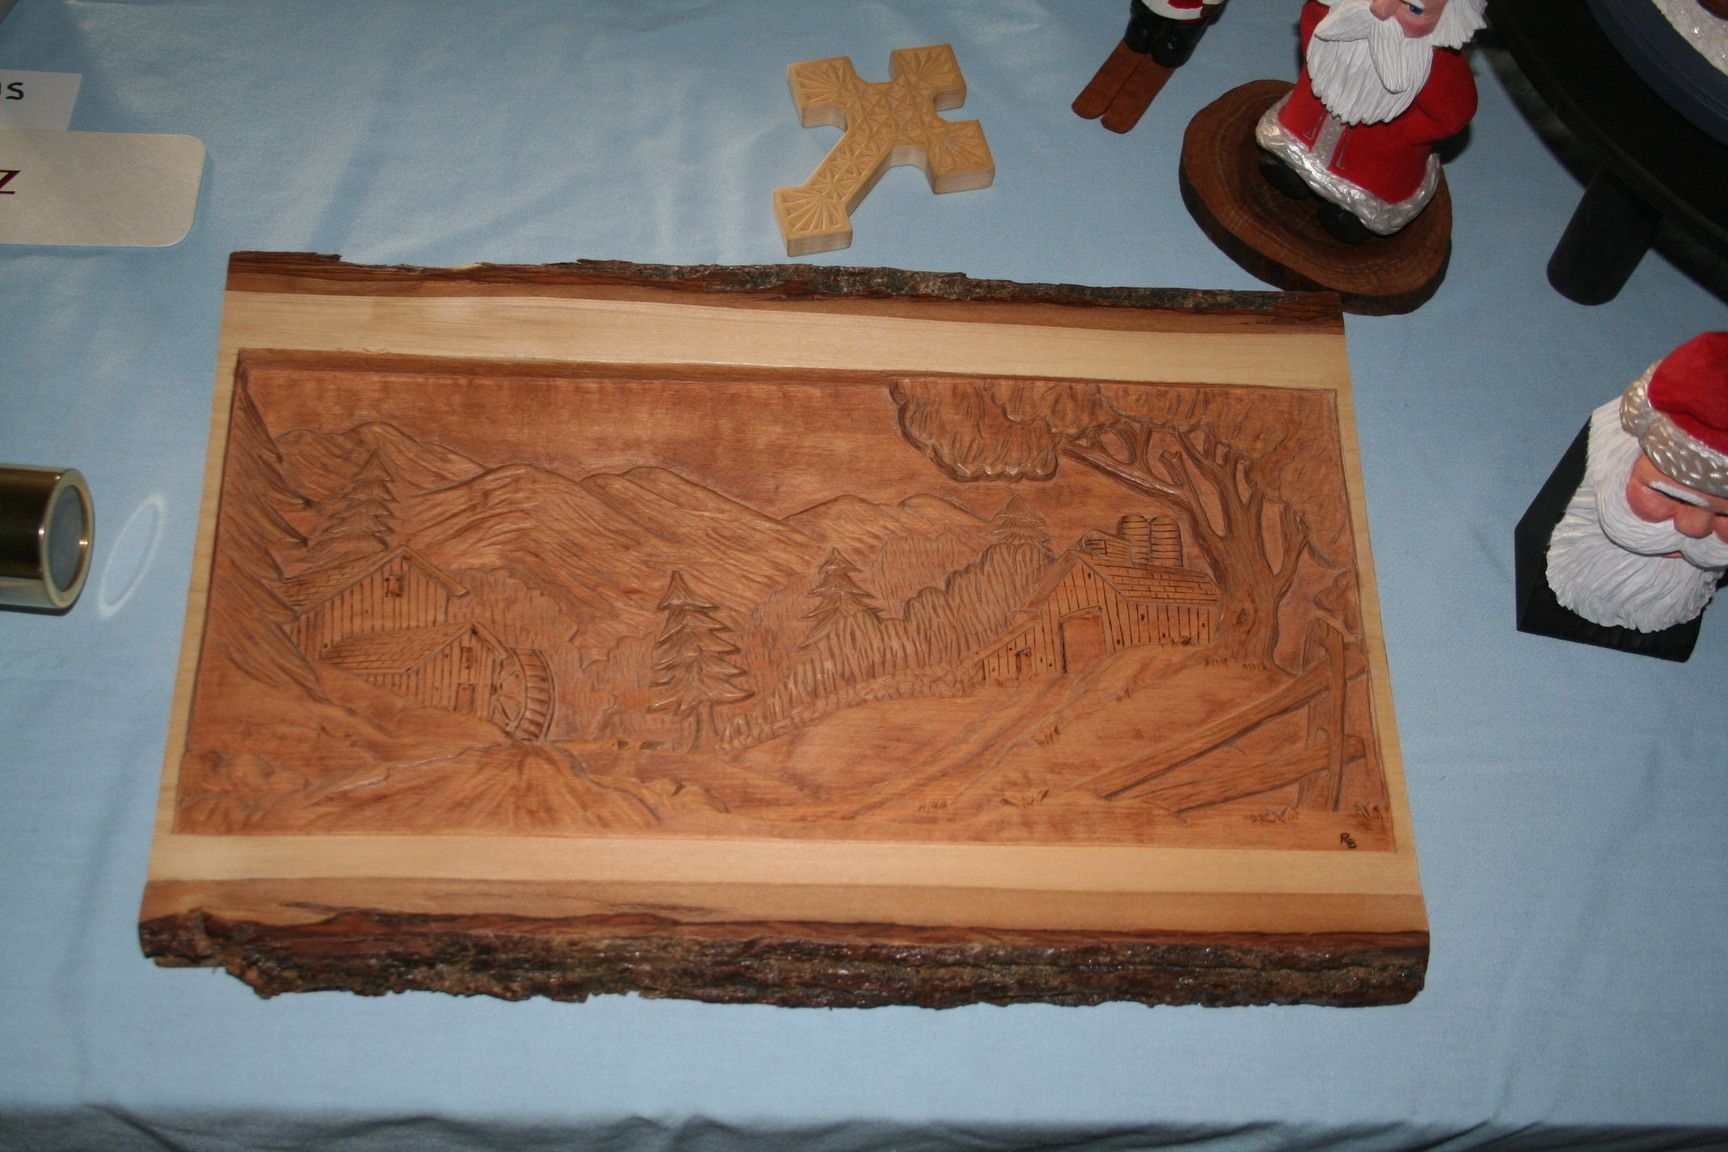 Relief carving on a basswood barkside slab